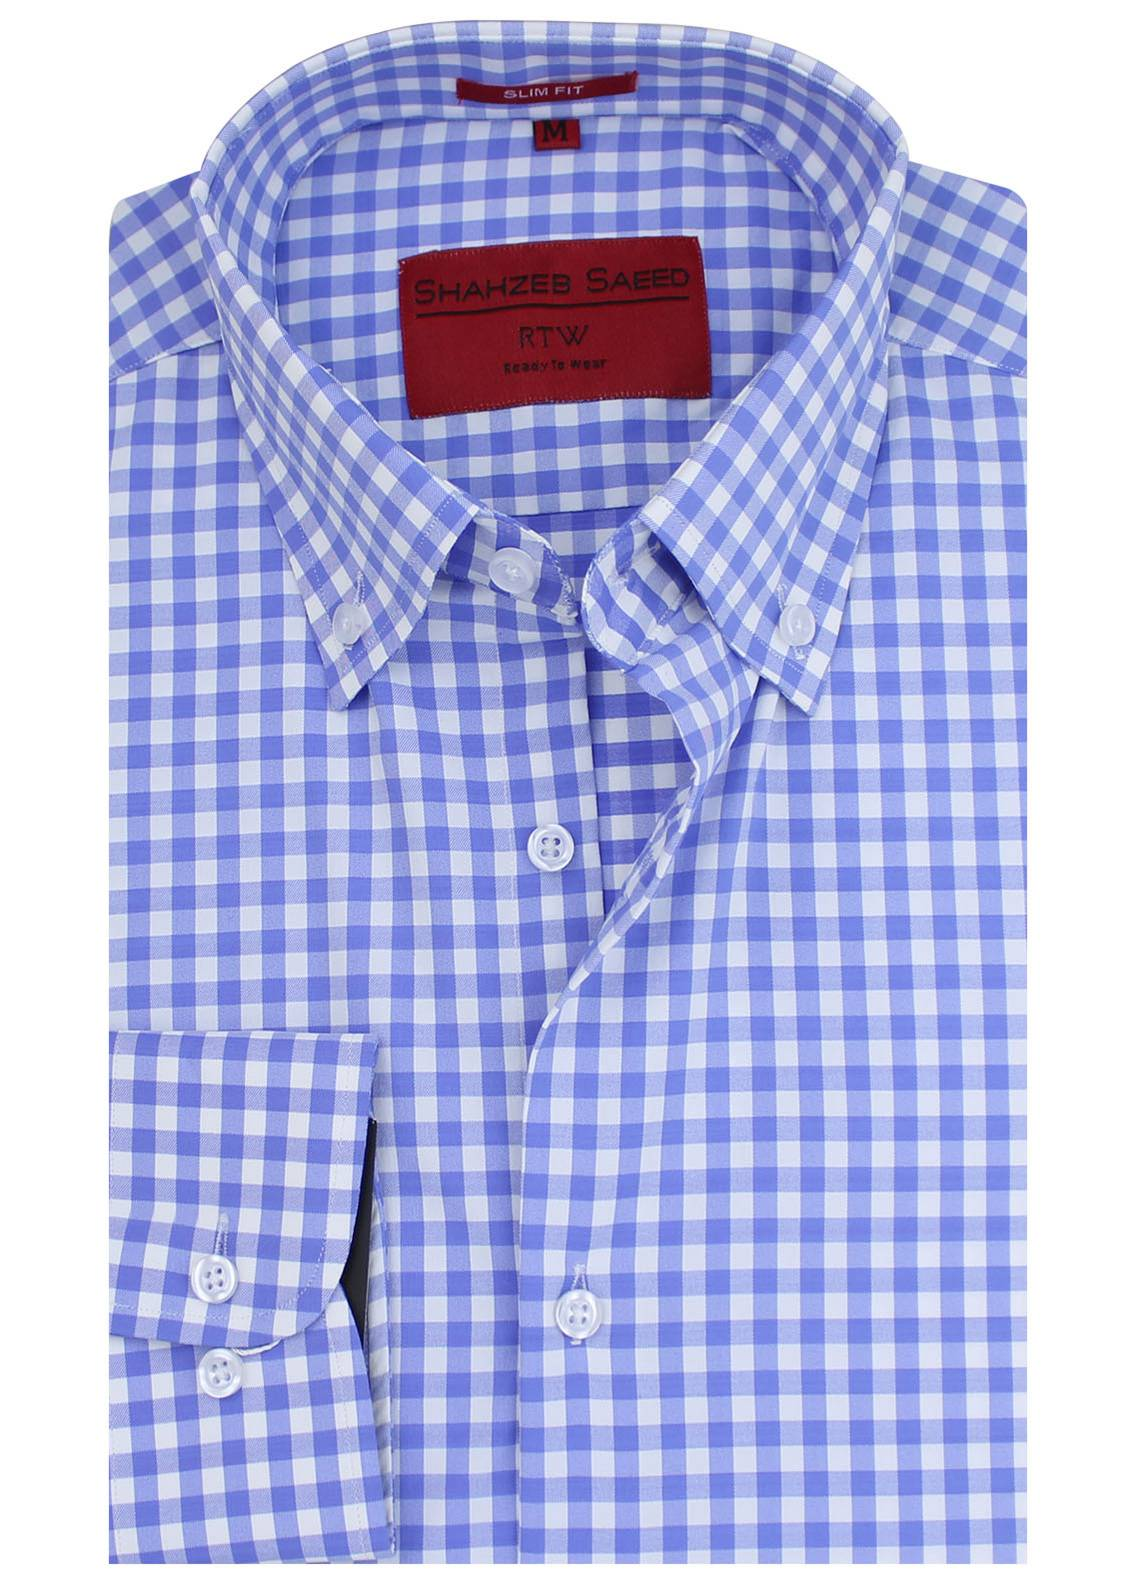 Shahzeb Saeed Cotton Formal Shirts for Men - Sky Blue RTW-1446